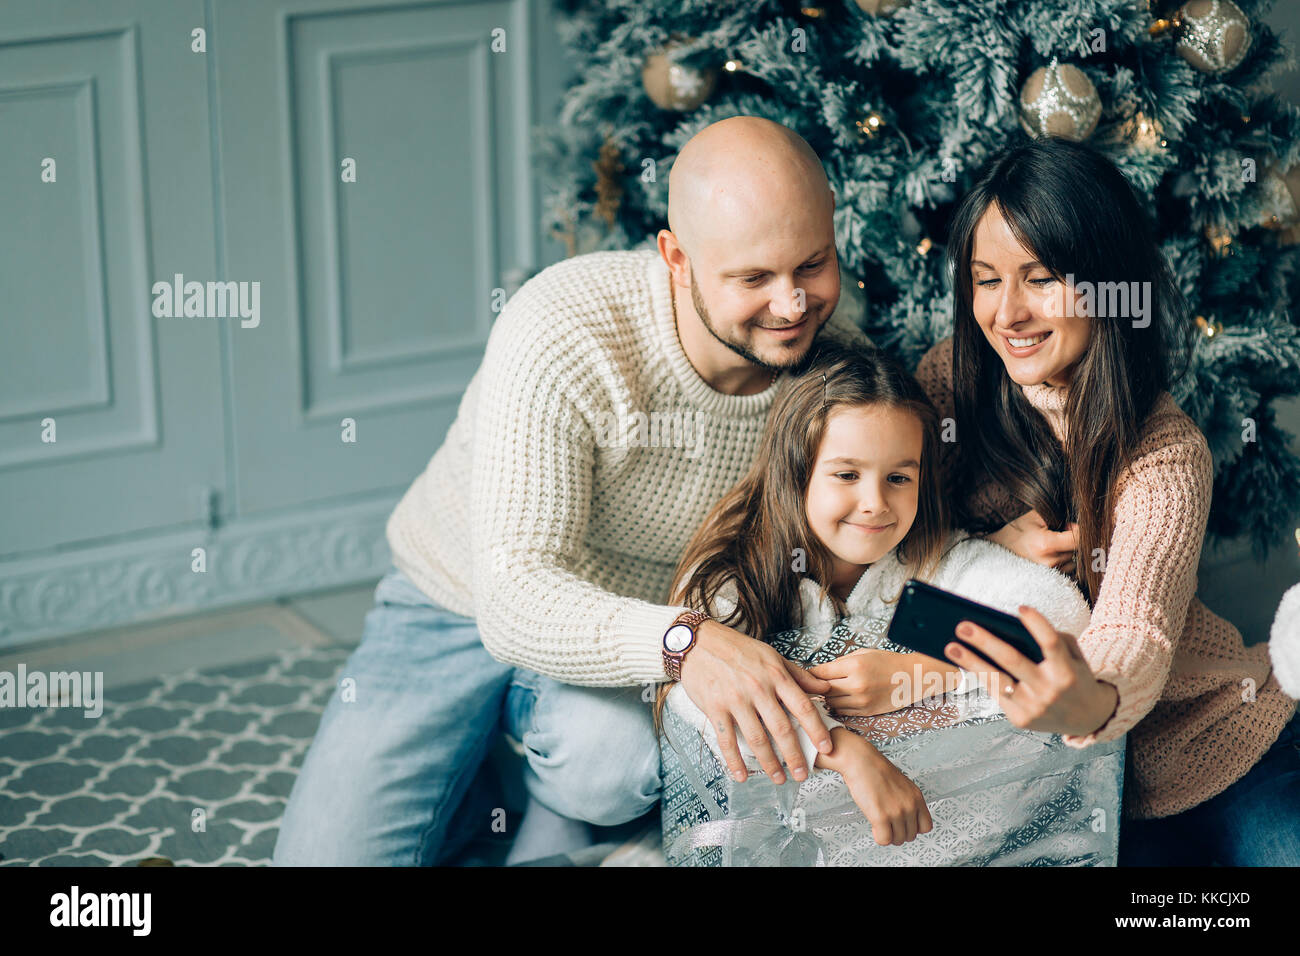 miling young family in Christmas atmosphere making photo with smartphone Stock Photo